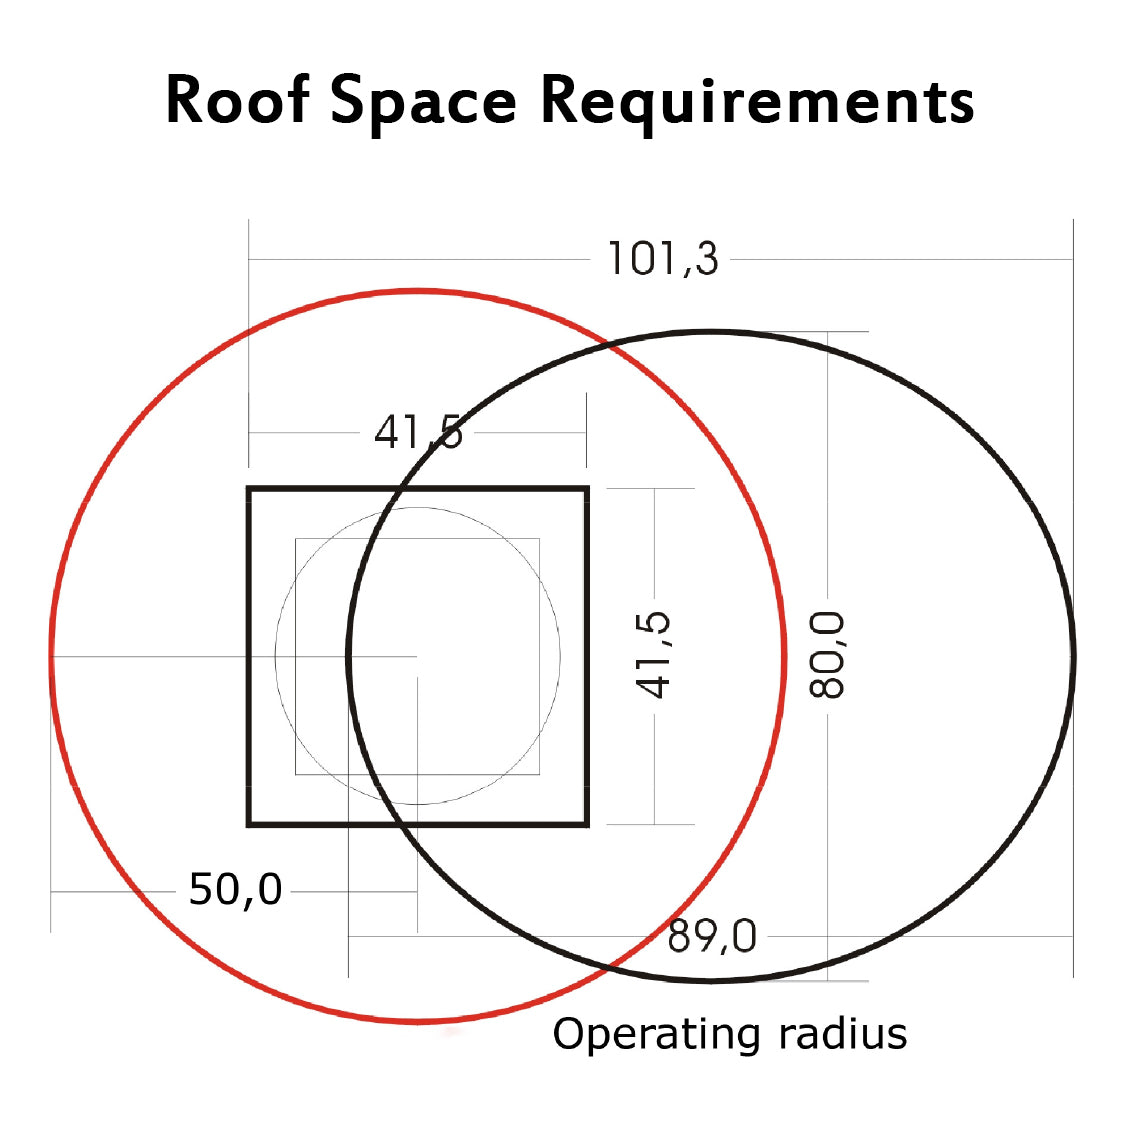 Autosat 2s Roof Space Requirements